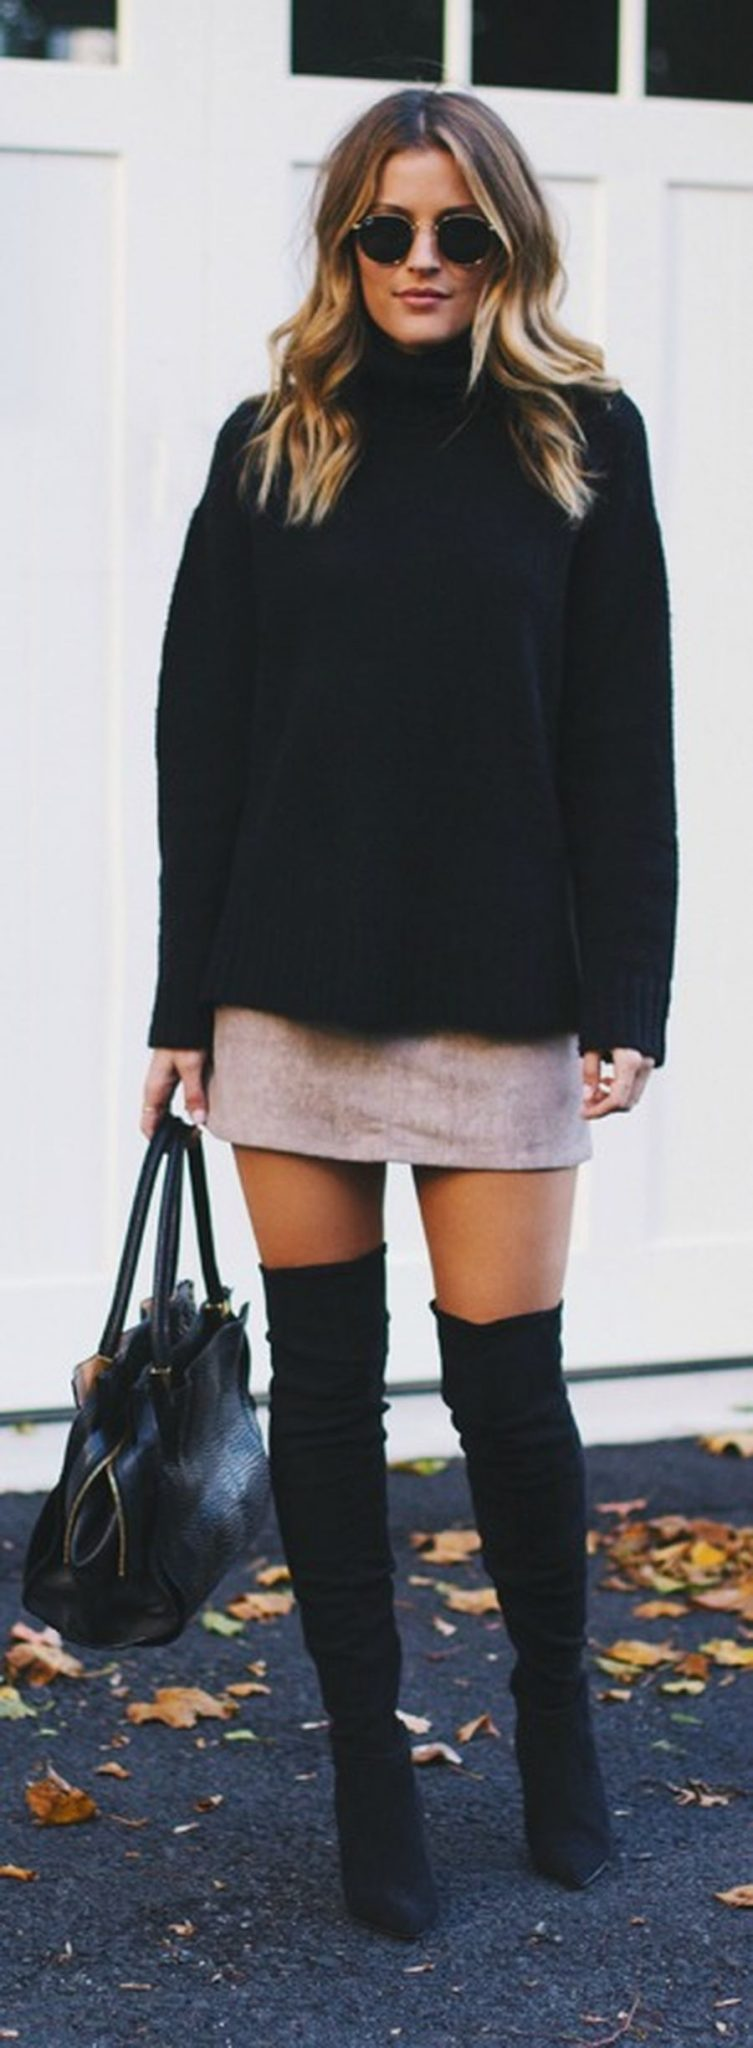 Skirt trends ideas for winter outfits this year 24